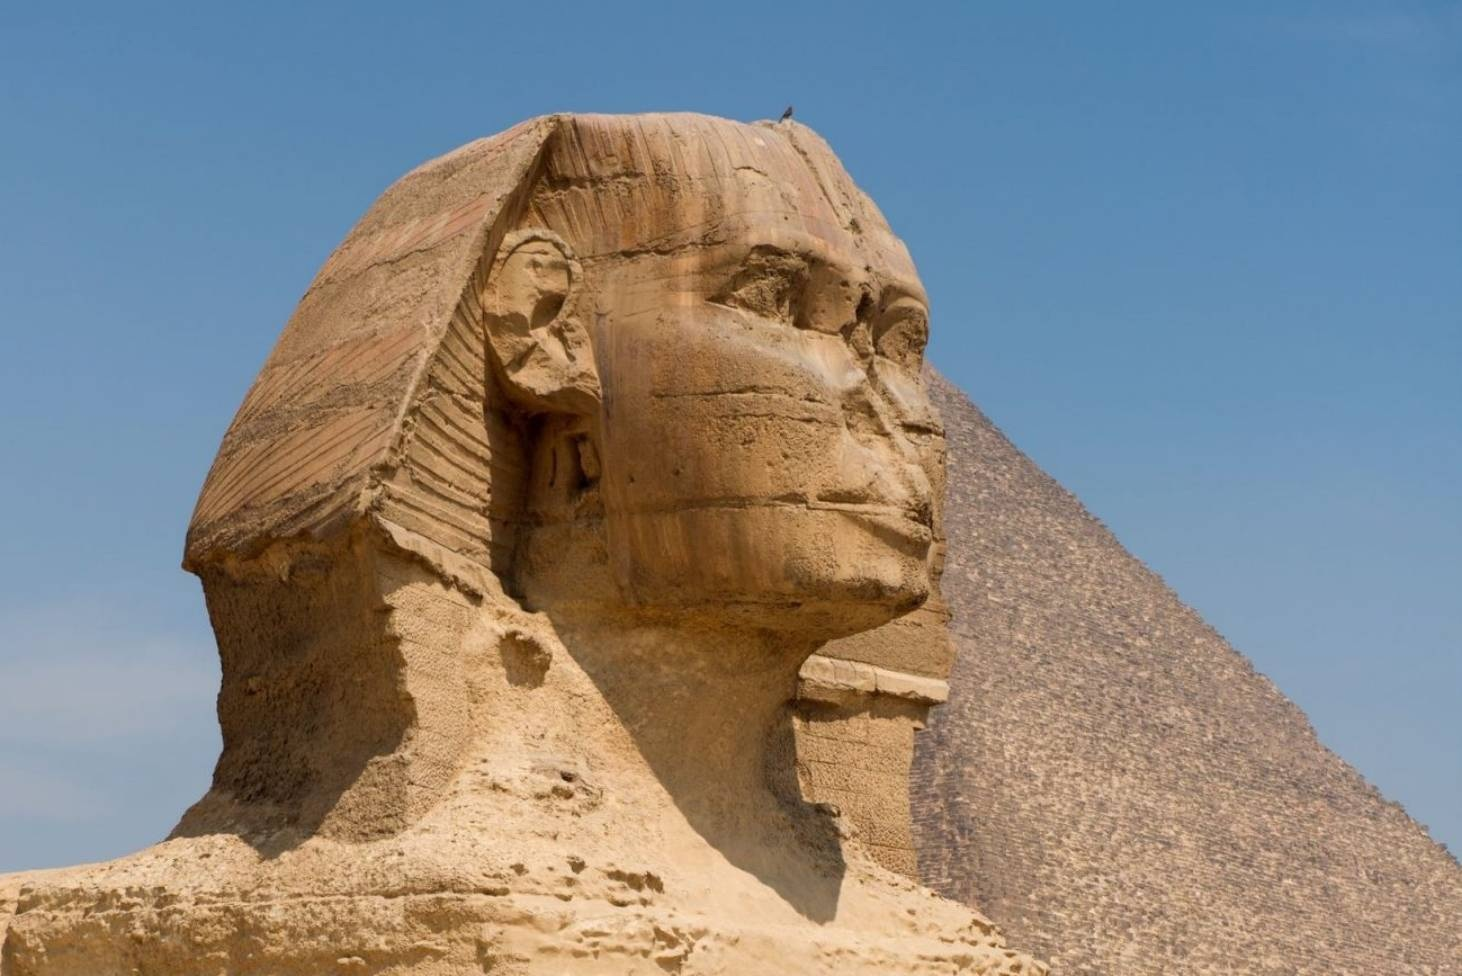 The copycat construction of the Great Sphinx of Giza in Hebei Province